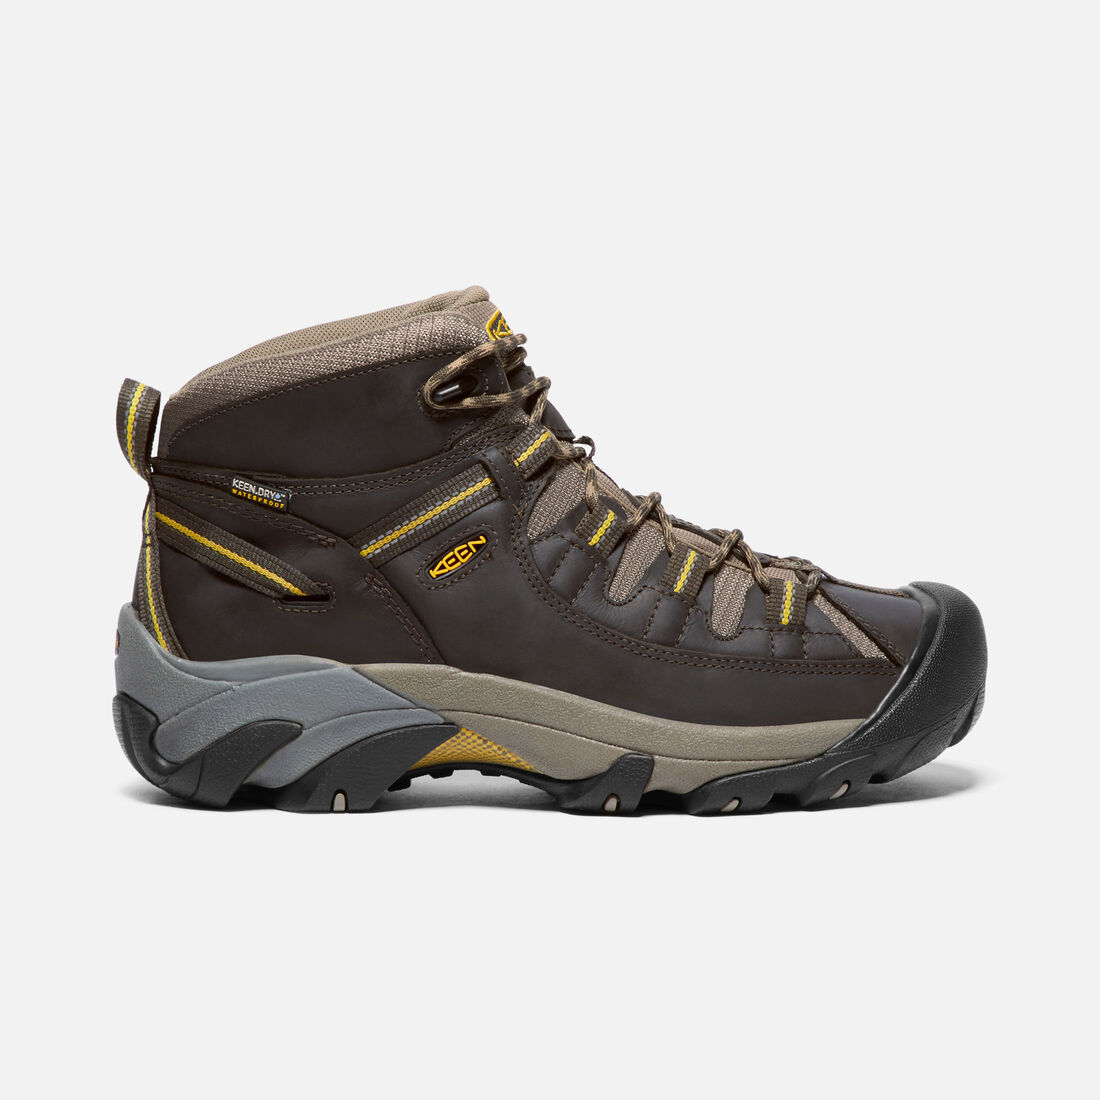 ea81a77f6be Men s Targhee II Waterproof Mid Wide in Black Olive Yellow - large view.